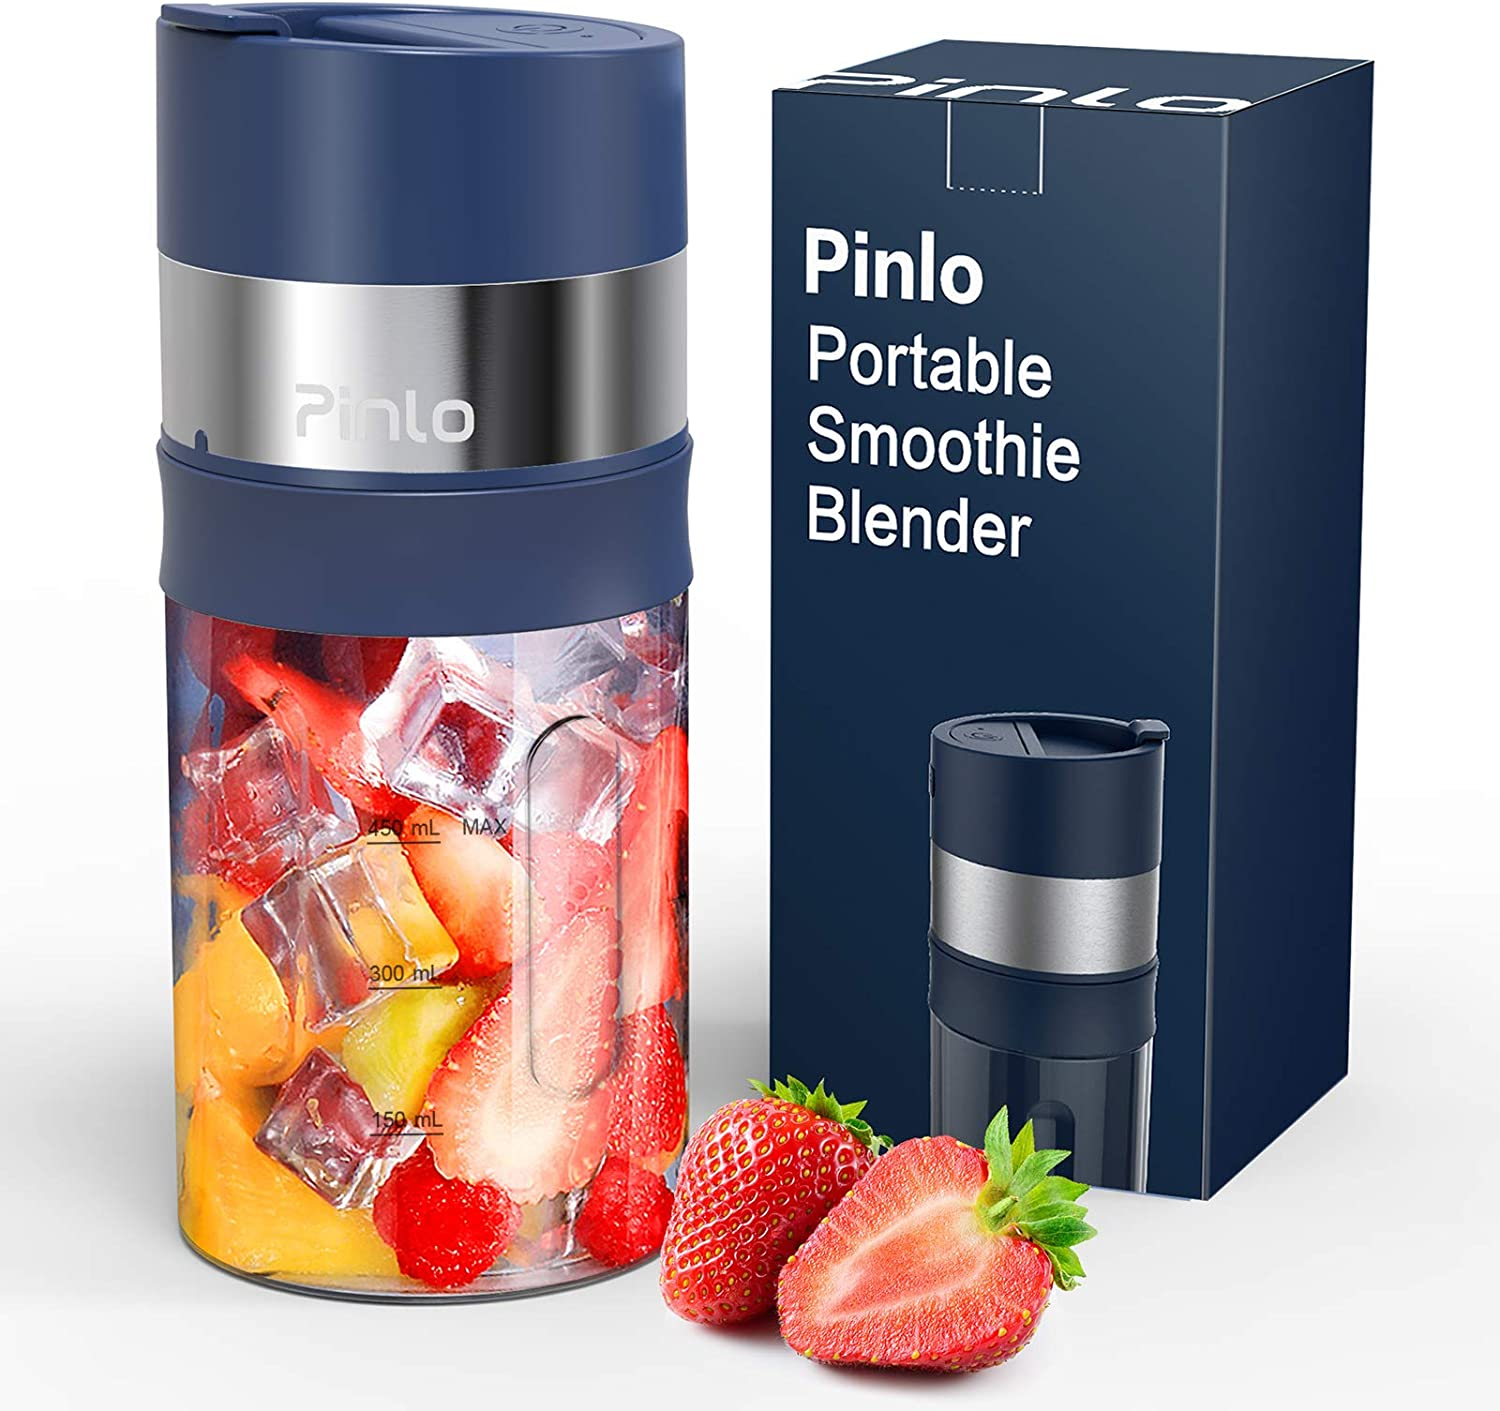 Portable Blender, Personal Size Blender for Shakes and Smoothies, USB Rechargeable Ice Crushing Smoothie Blender, 85 W Mini Blender with 6 Blades, 15 Oz Juicer Cup for Protein Fruit Mixing (Navy Blue)